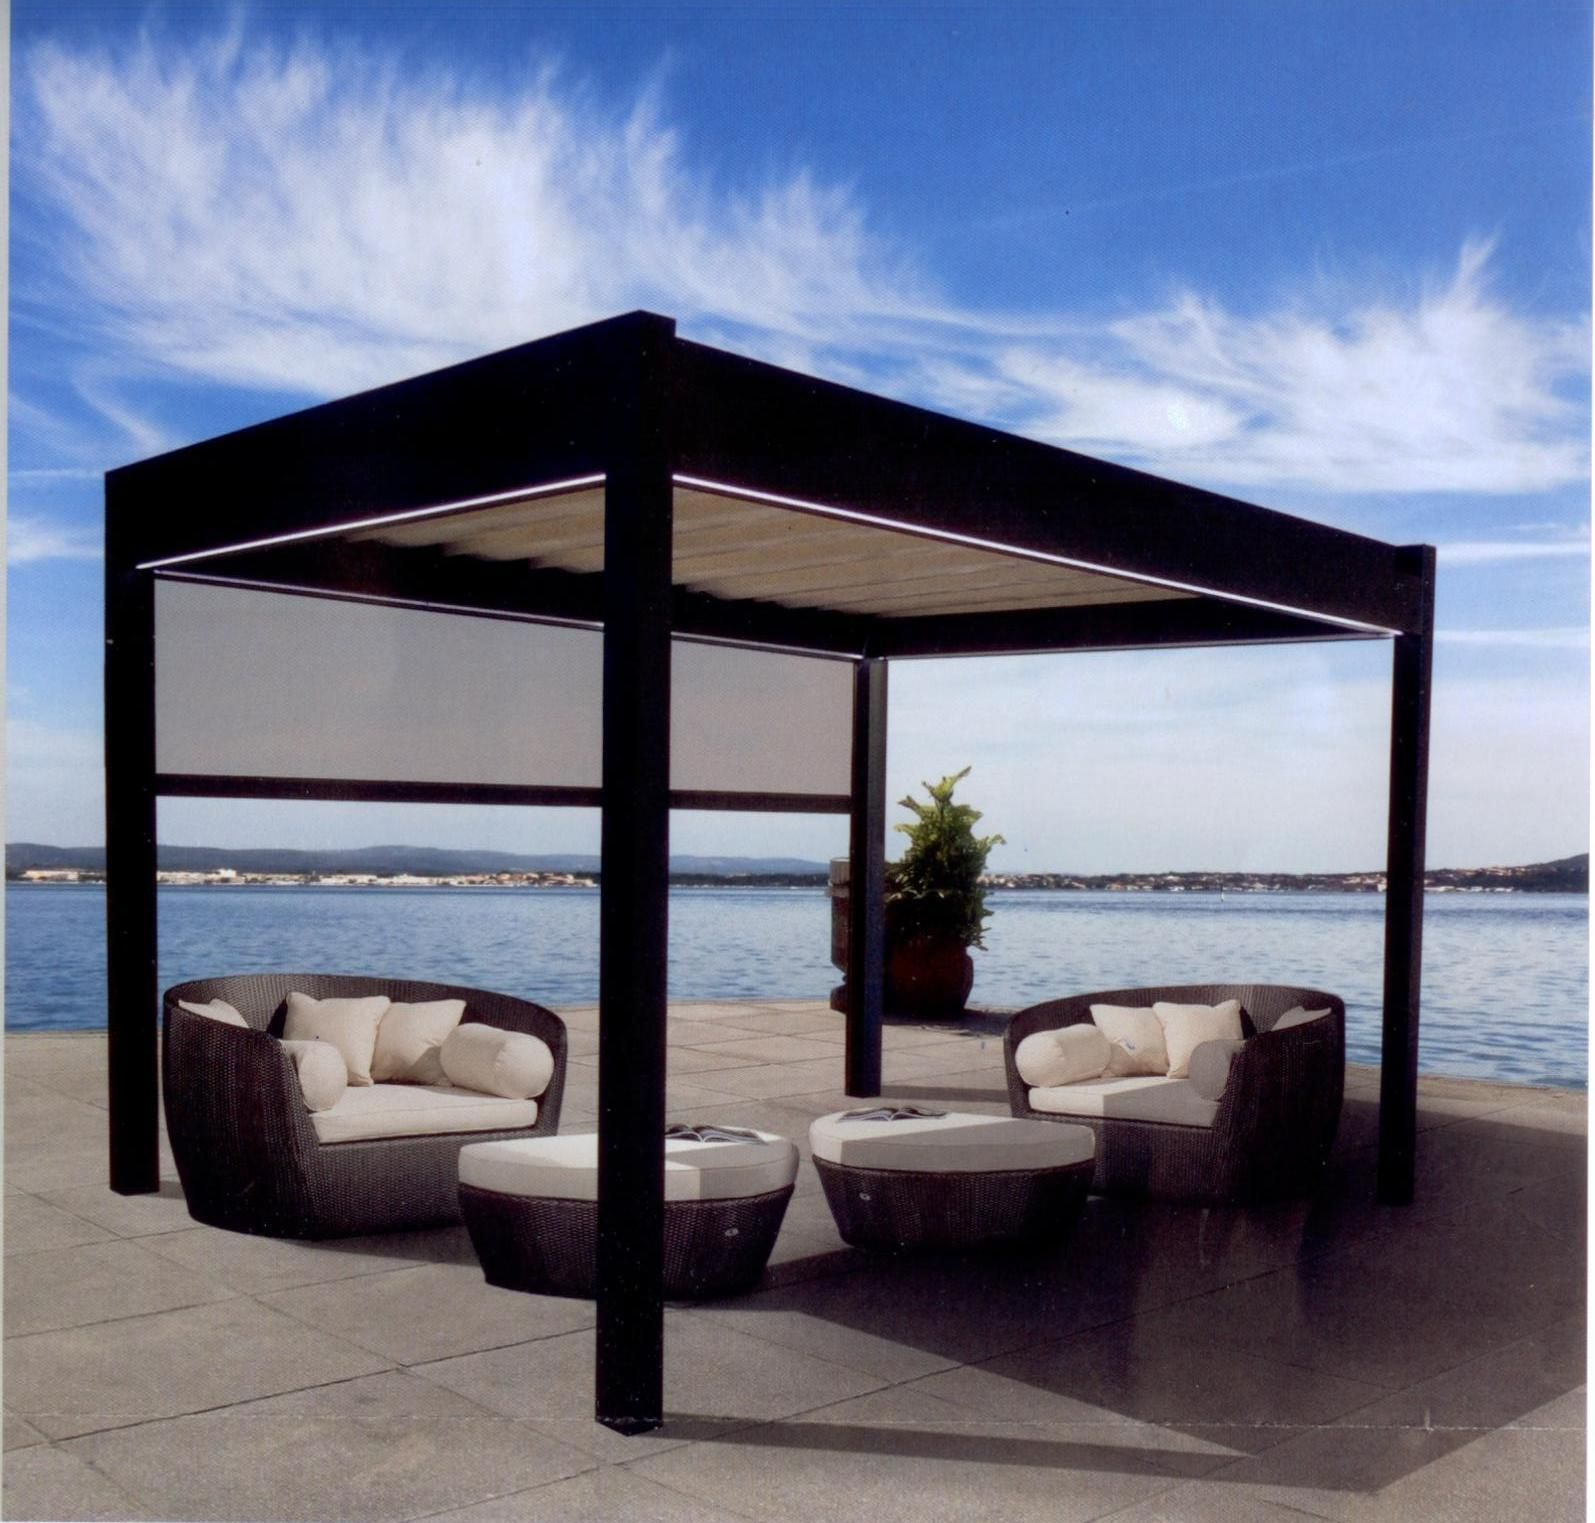 brustor b 300 outdoor living architecture pinterest architecture